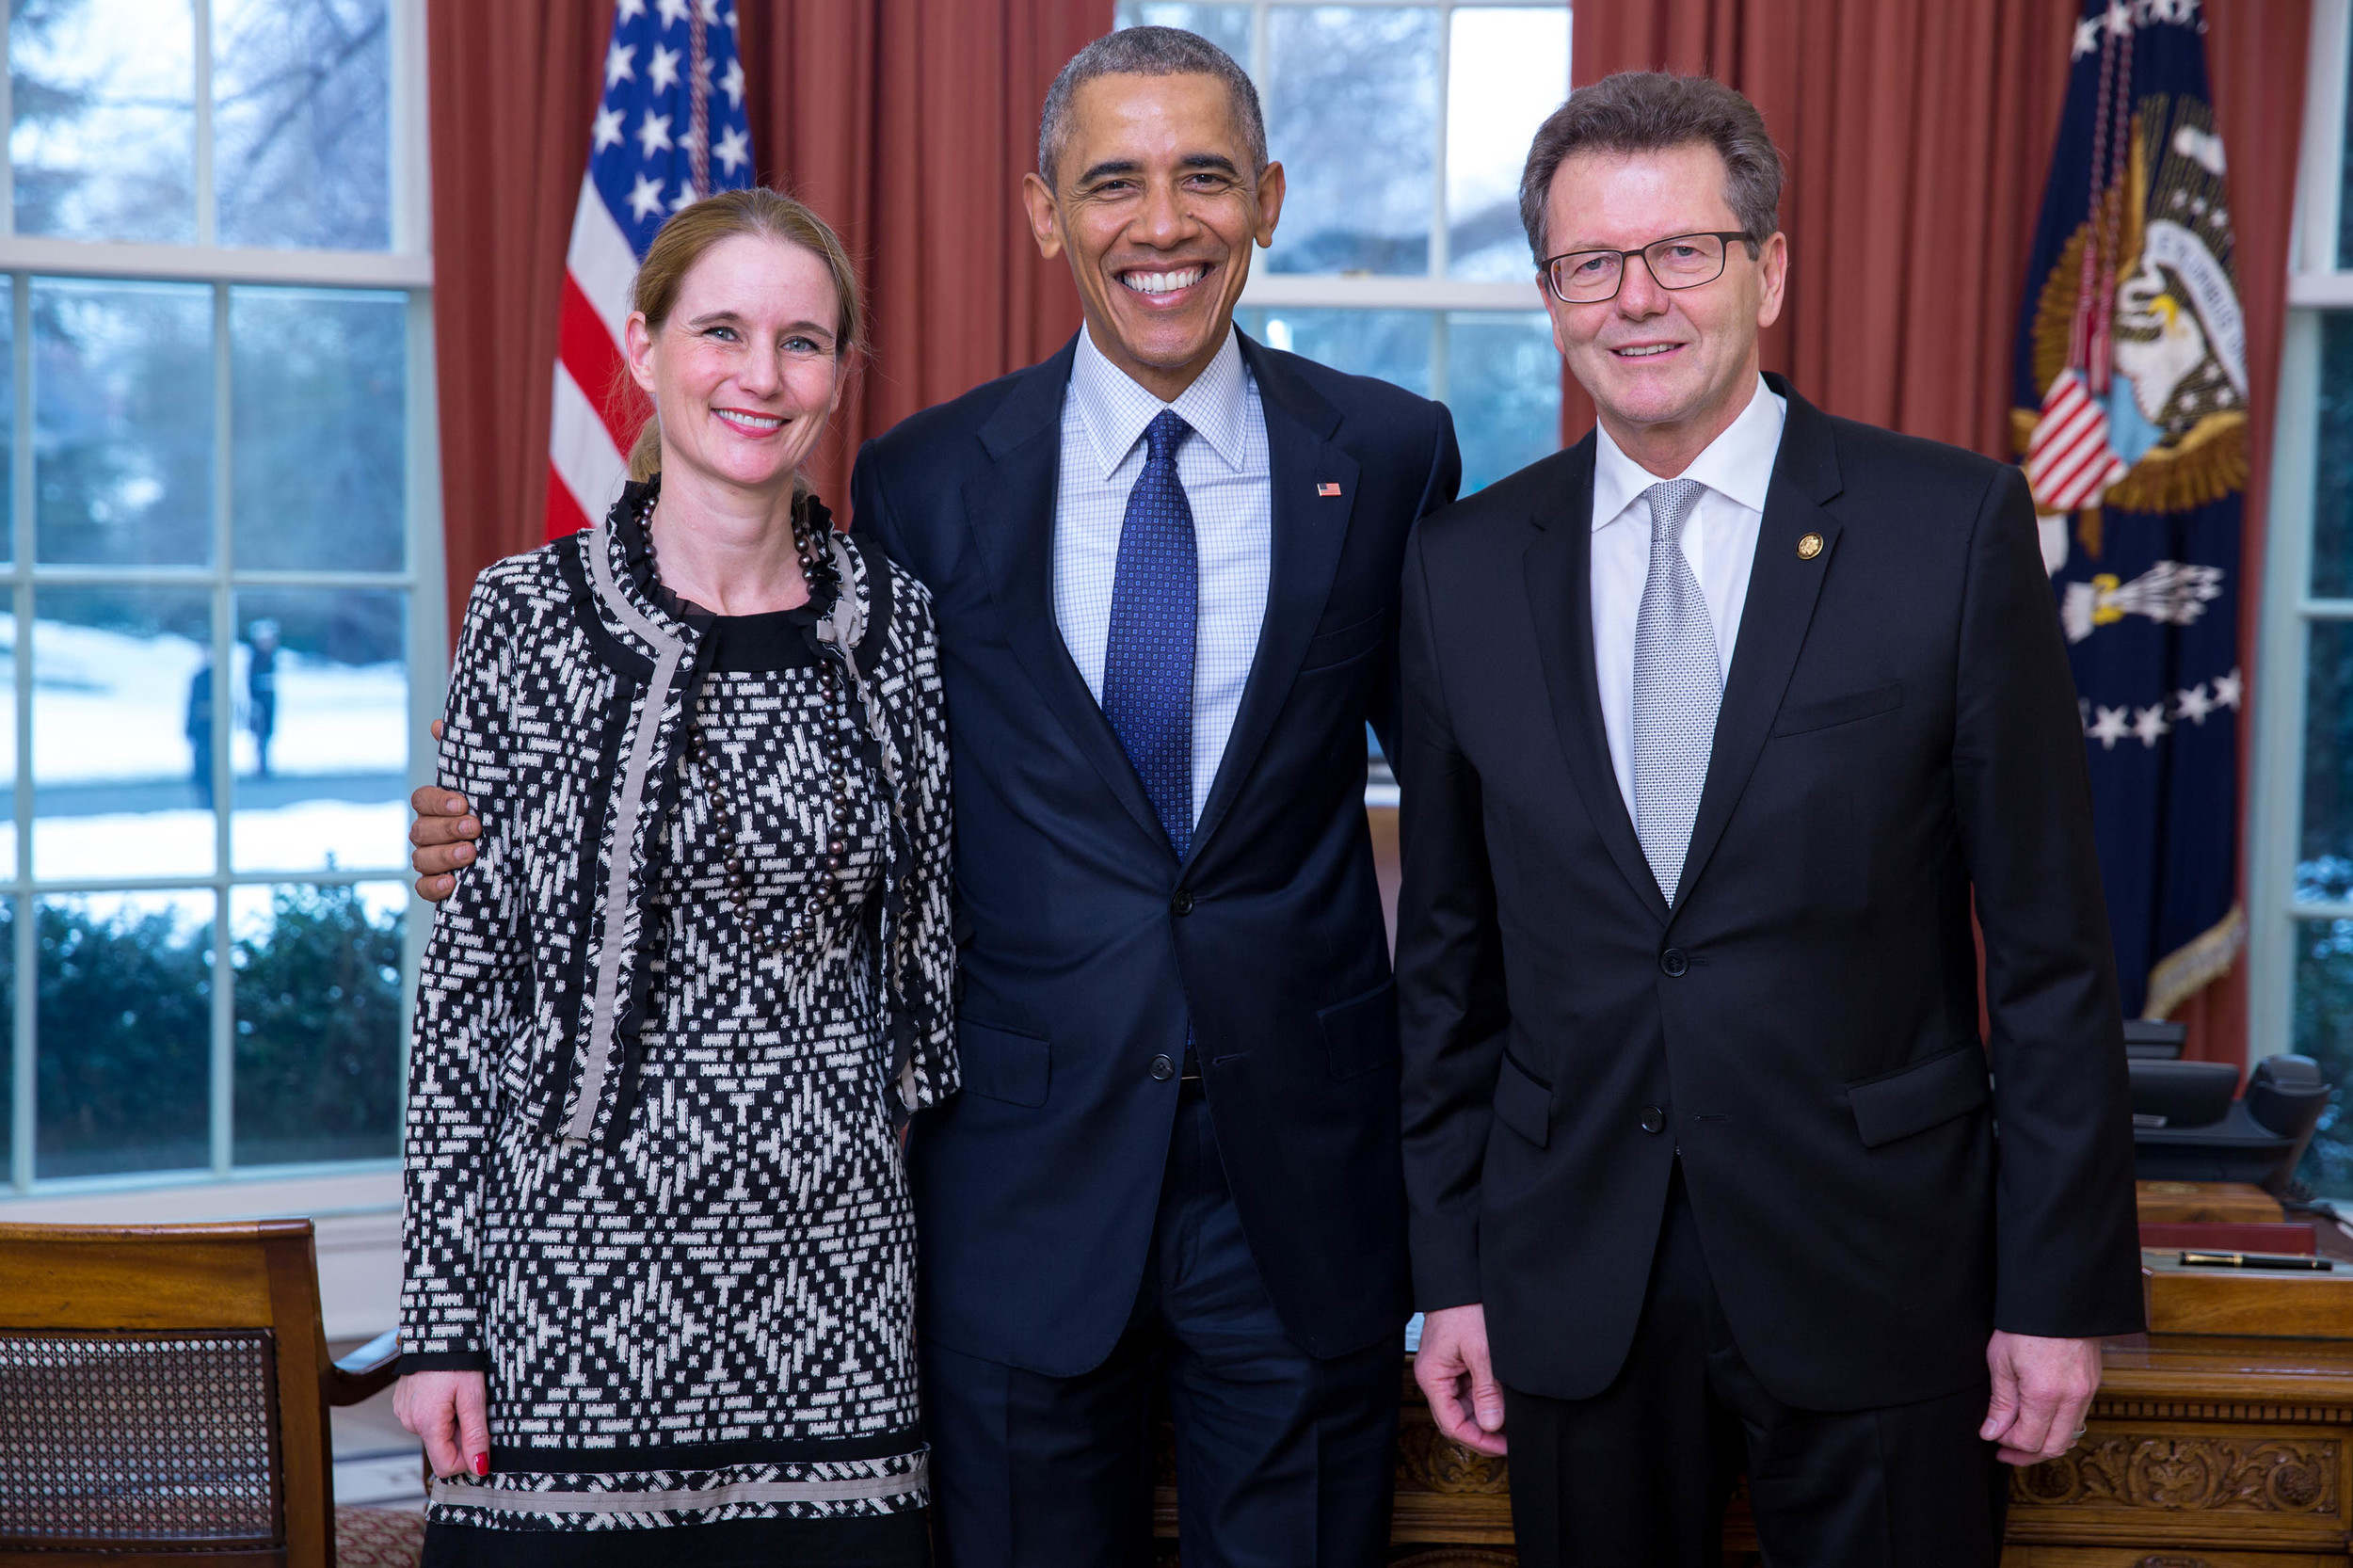 President Obama with Ambassador Waldner and his wife Gudrun.Photos: The White House